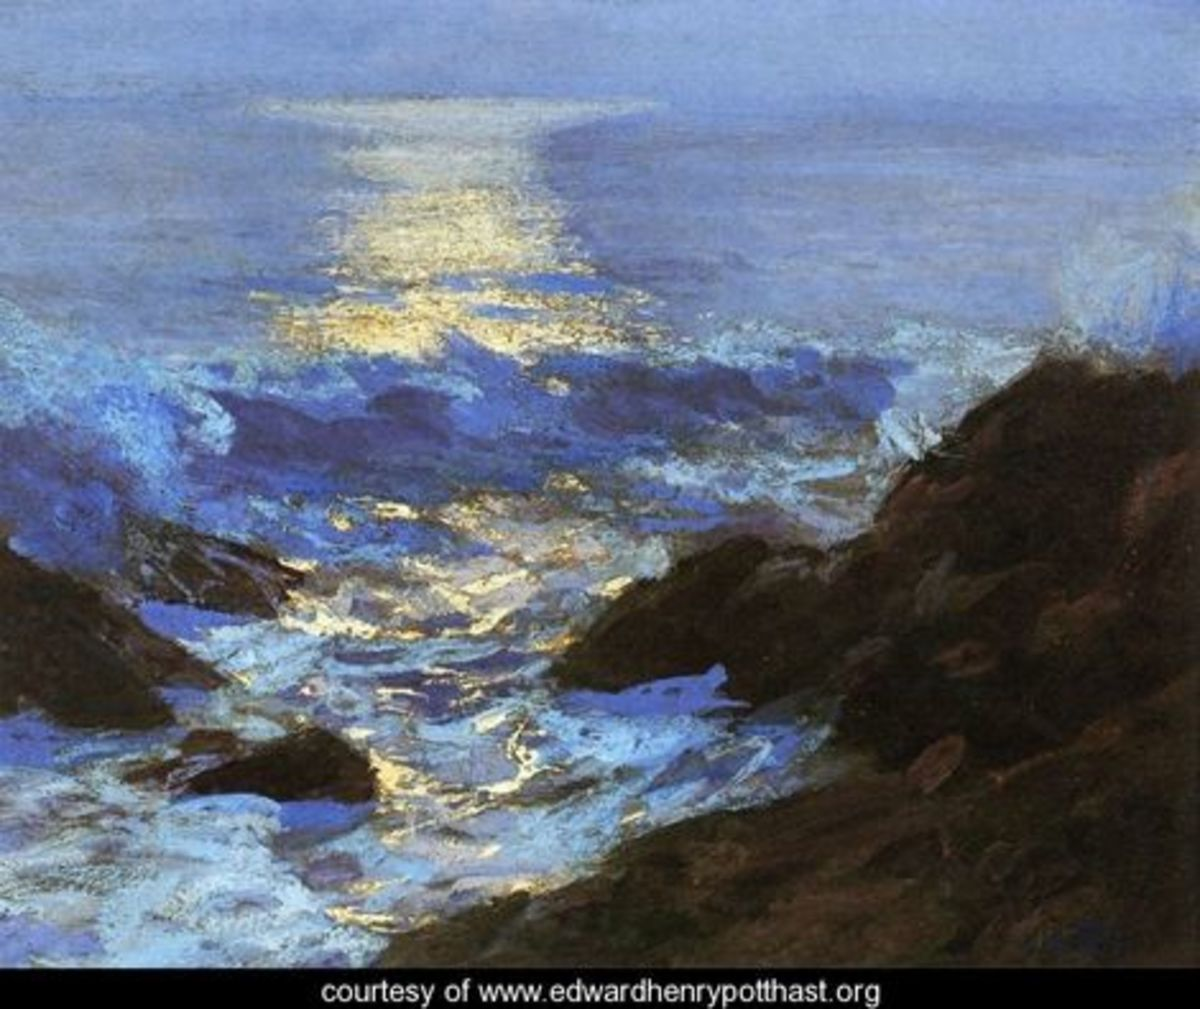 The sea serves as a significant symbol in the awakening the ocean